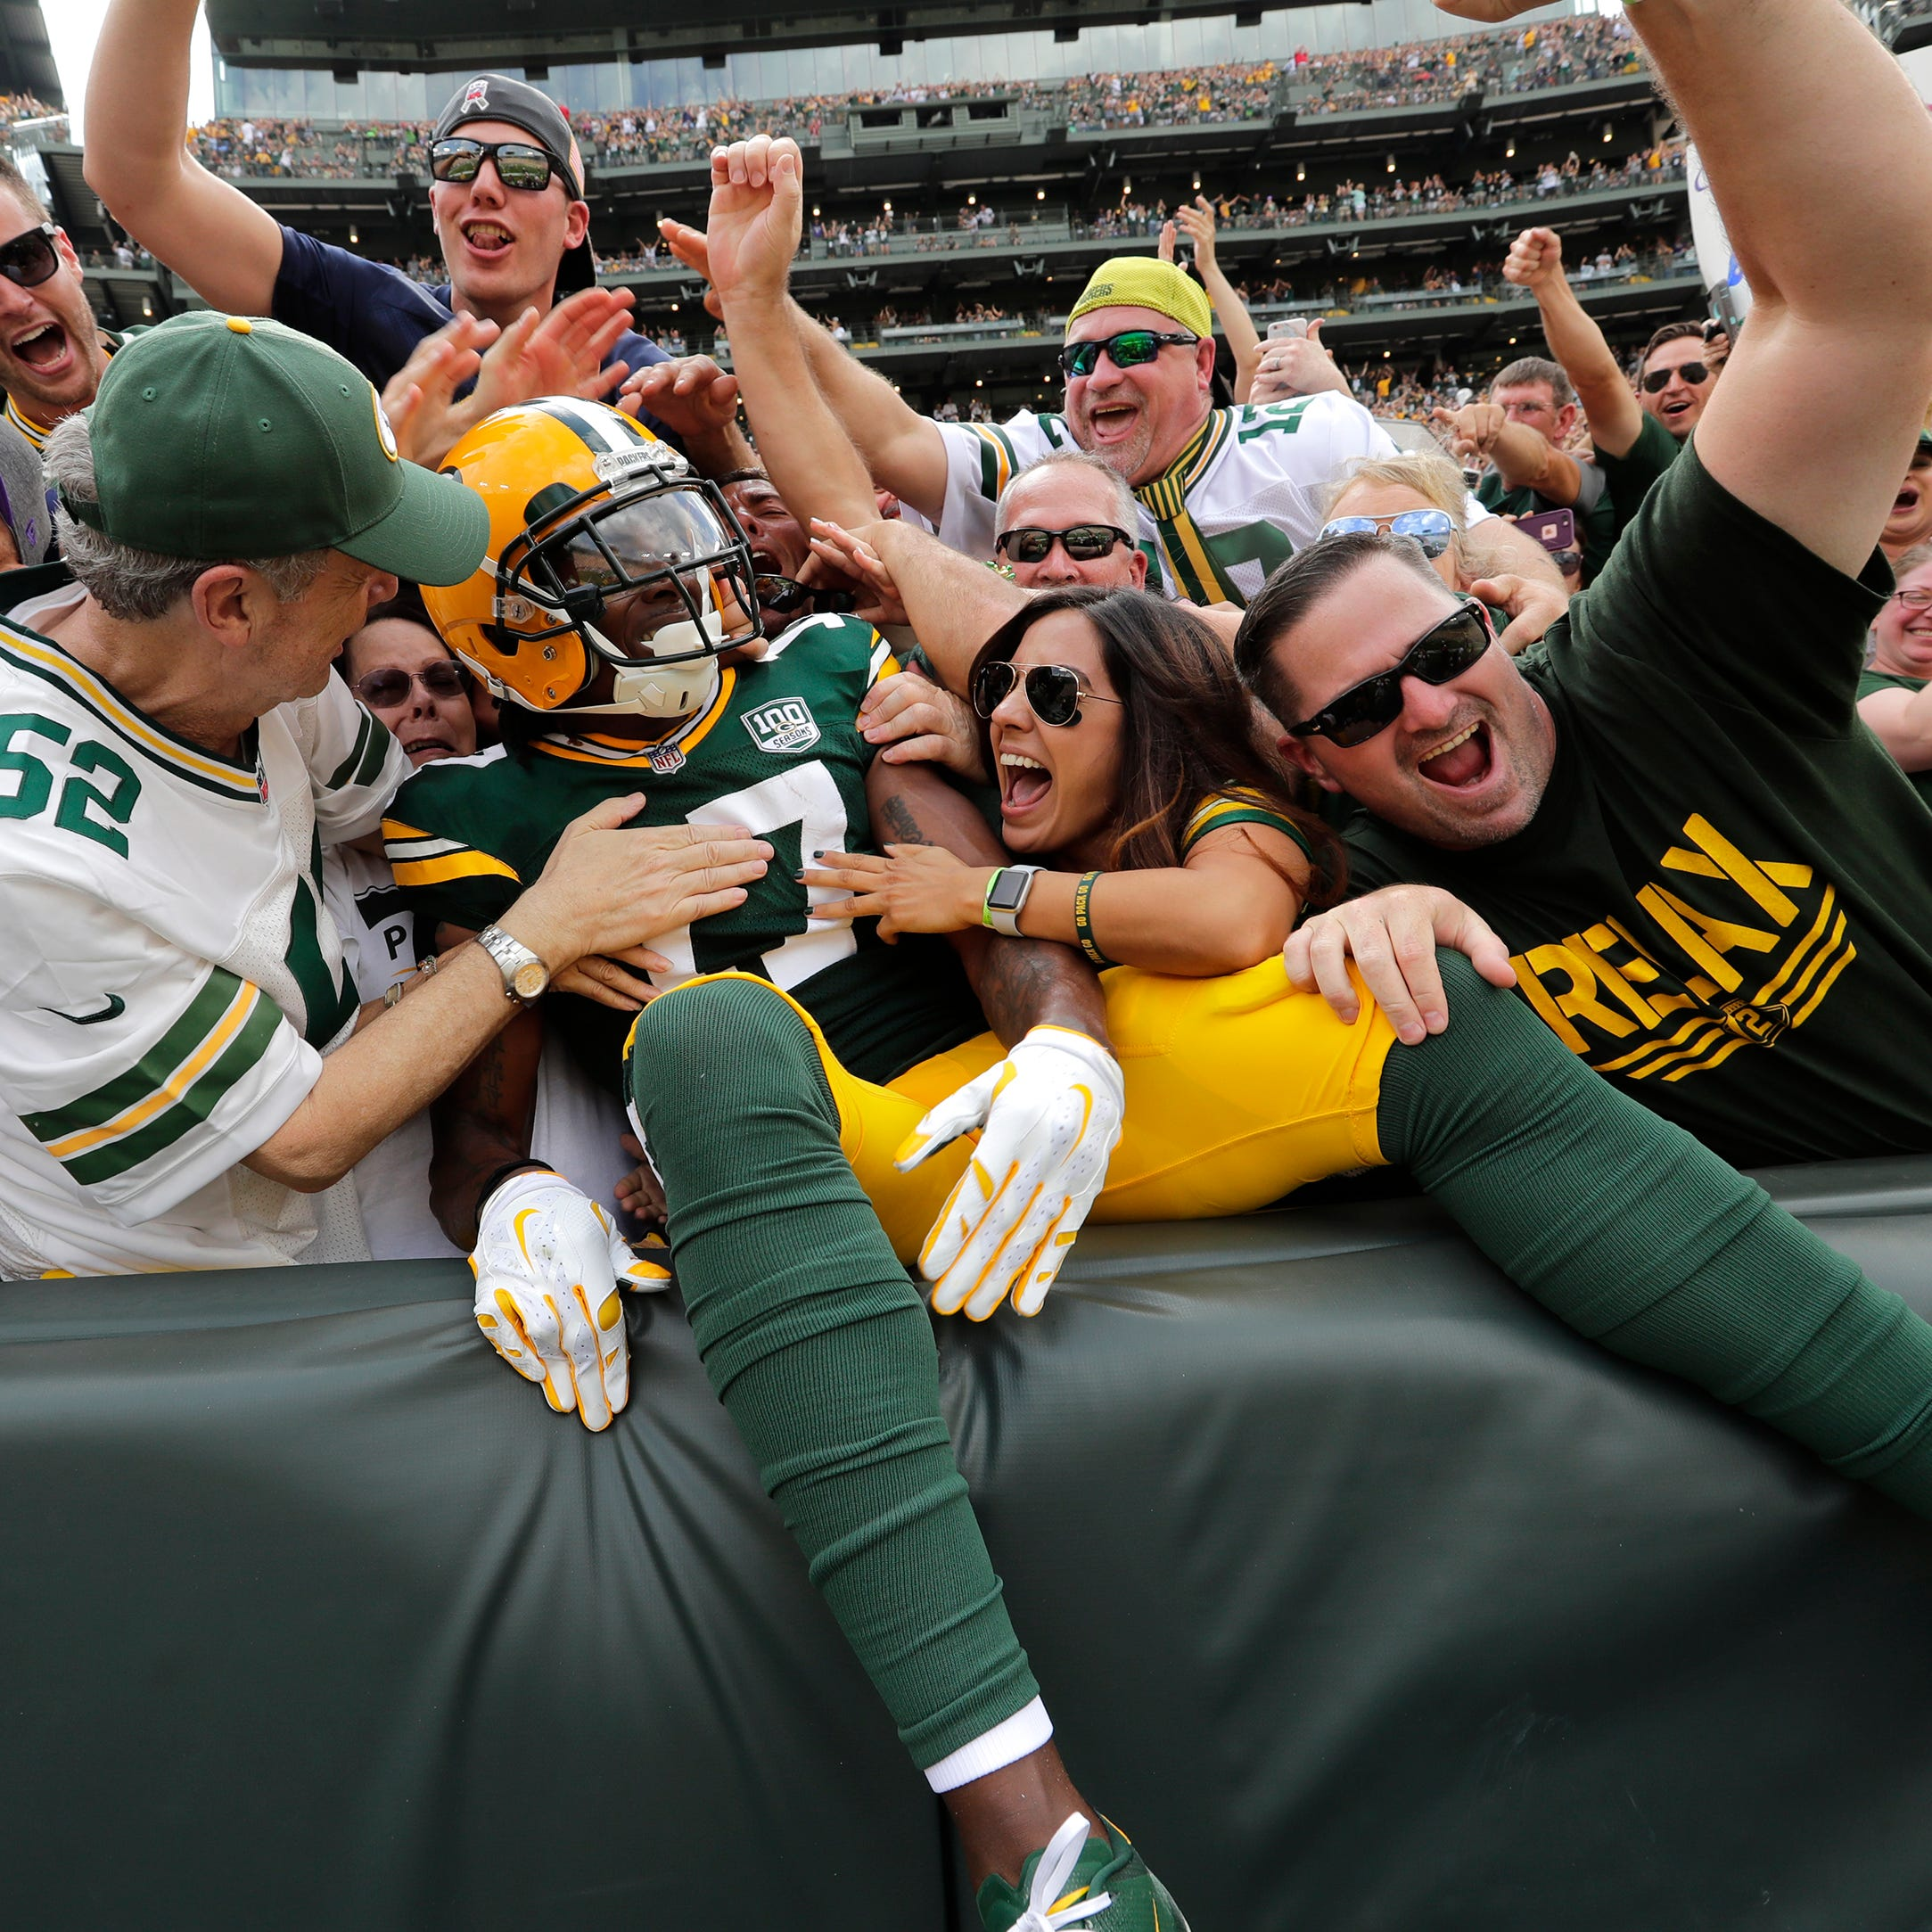 Forbes puts Packers outside the top 10 in NFL's most valuable teams